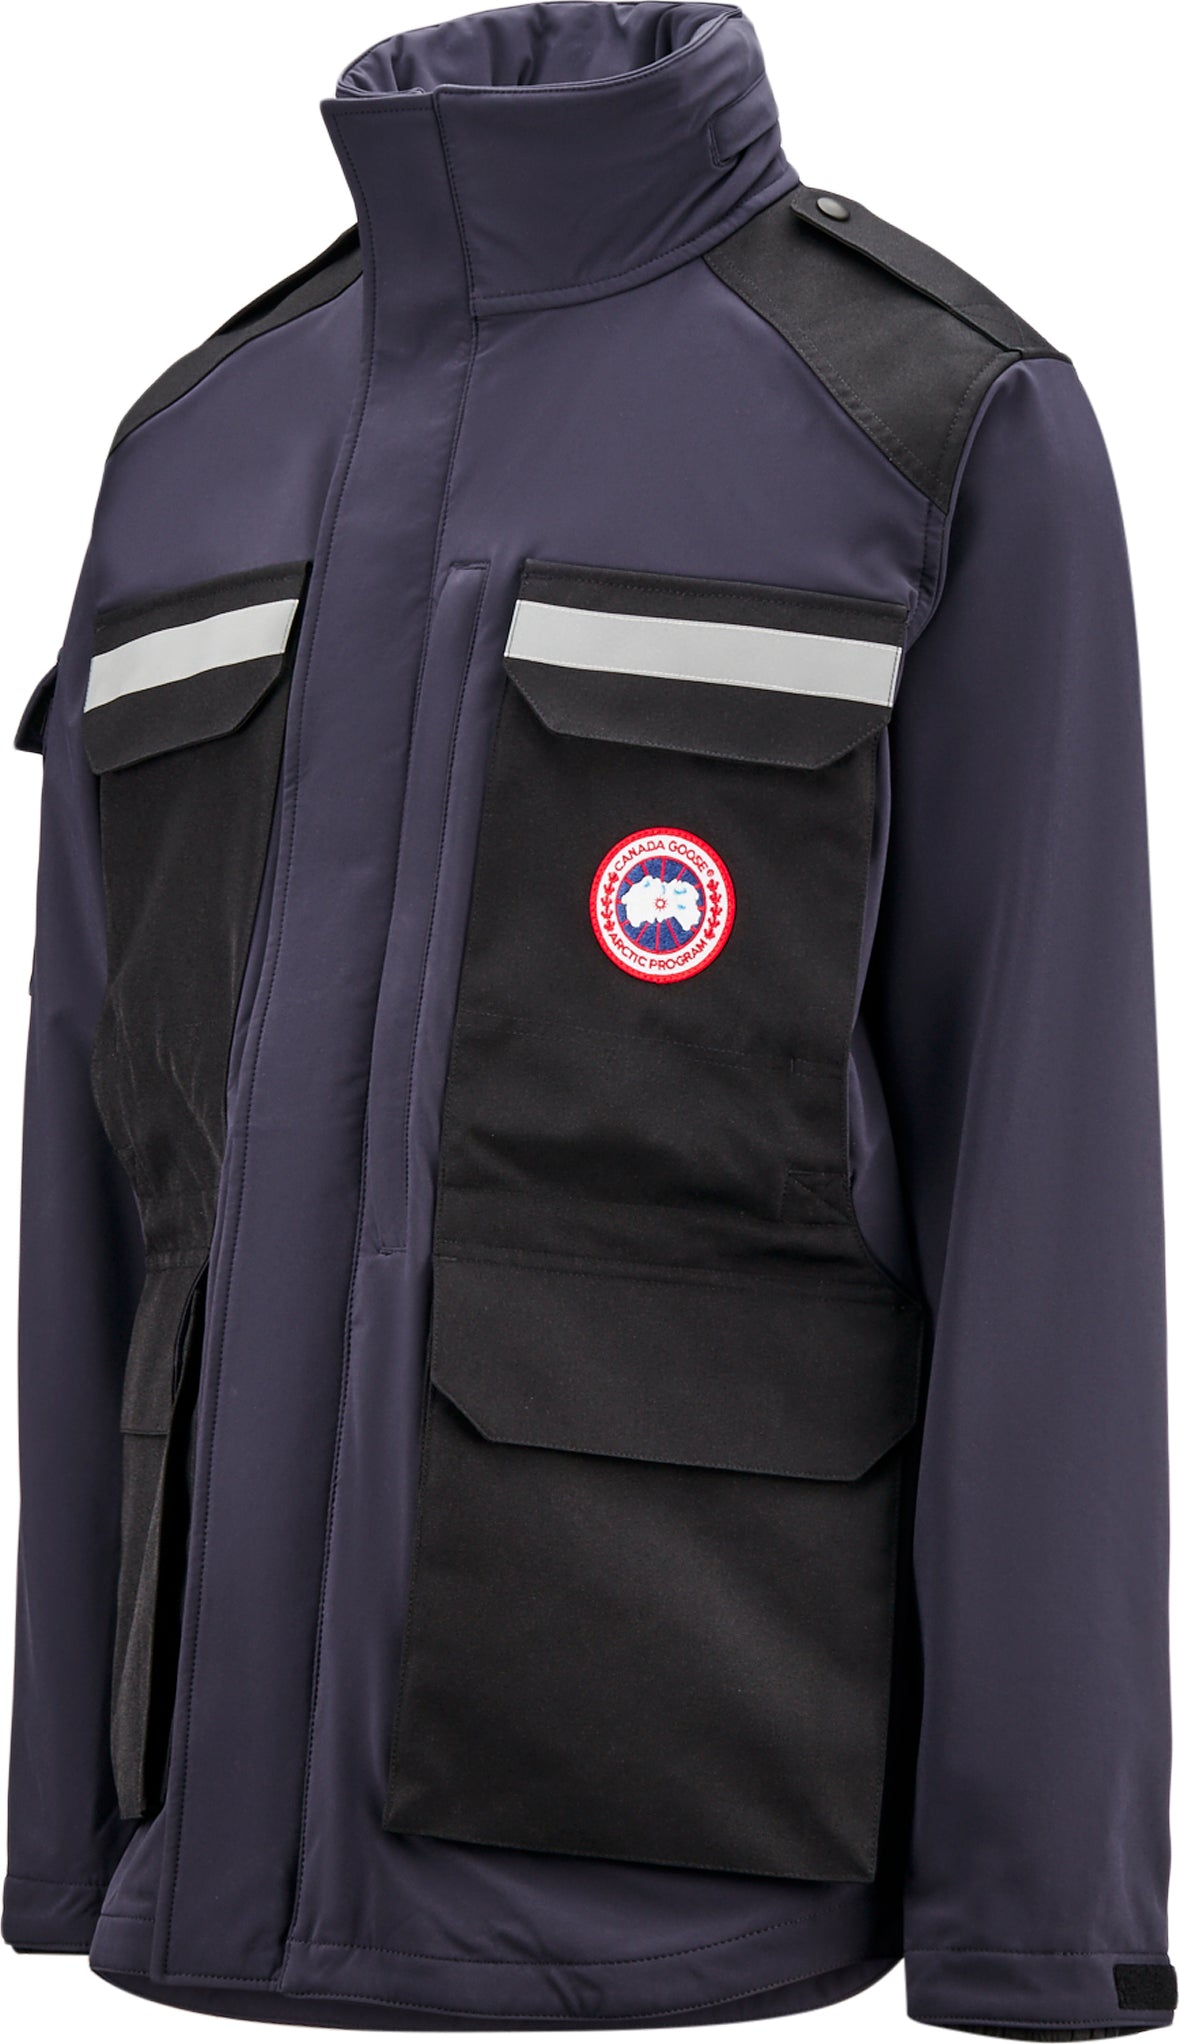 d2563a7f605be Canada Goose Photojournalist Jacket - Men's | Altitude Sports